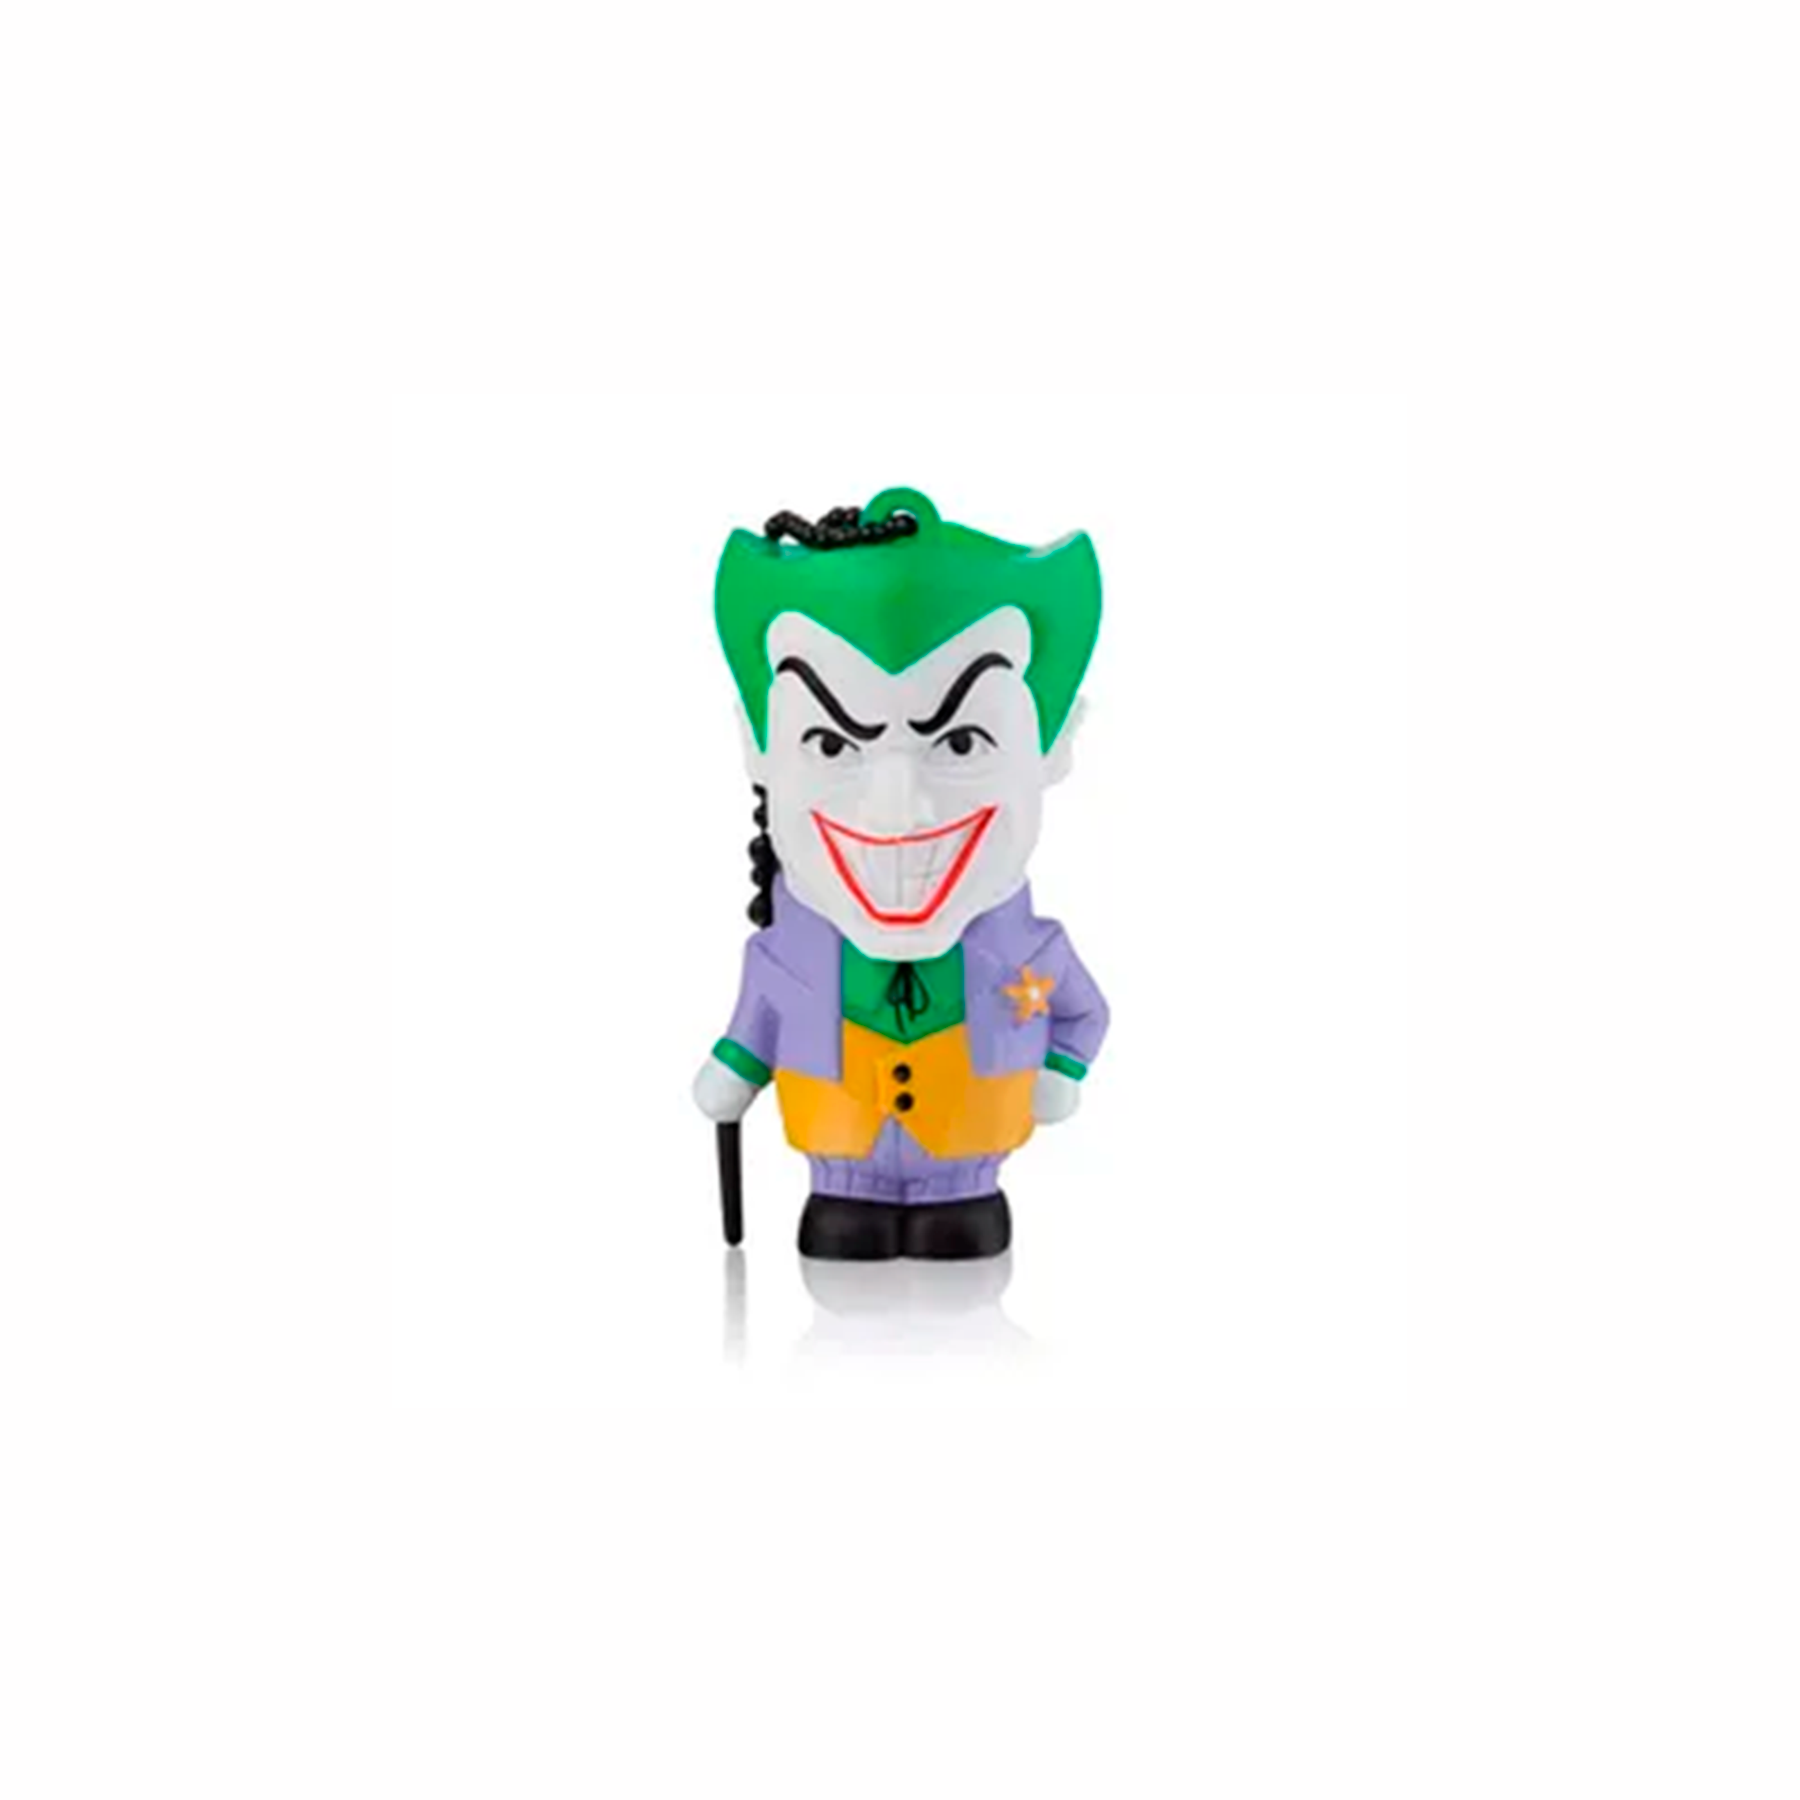 PENDRIVE CORINGA 8GB PD088 MULTILASER